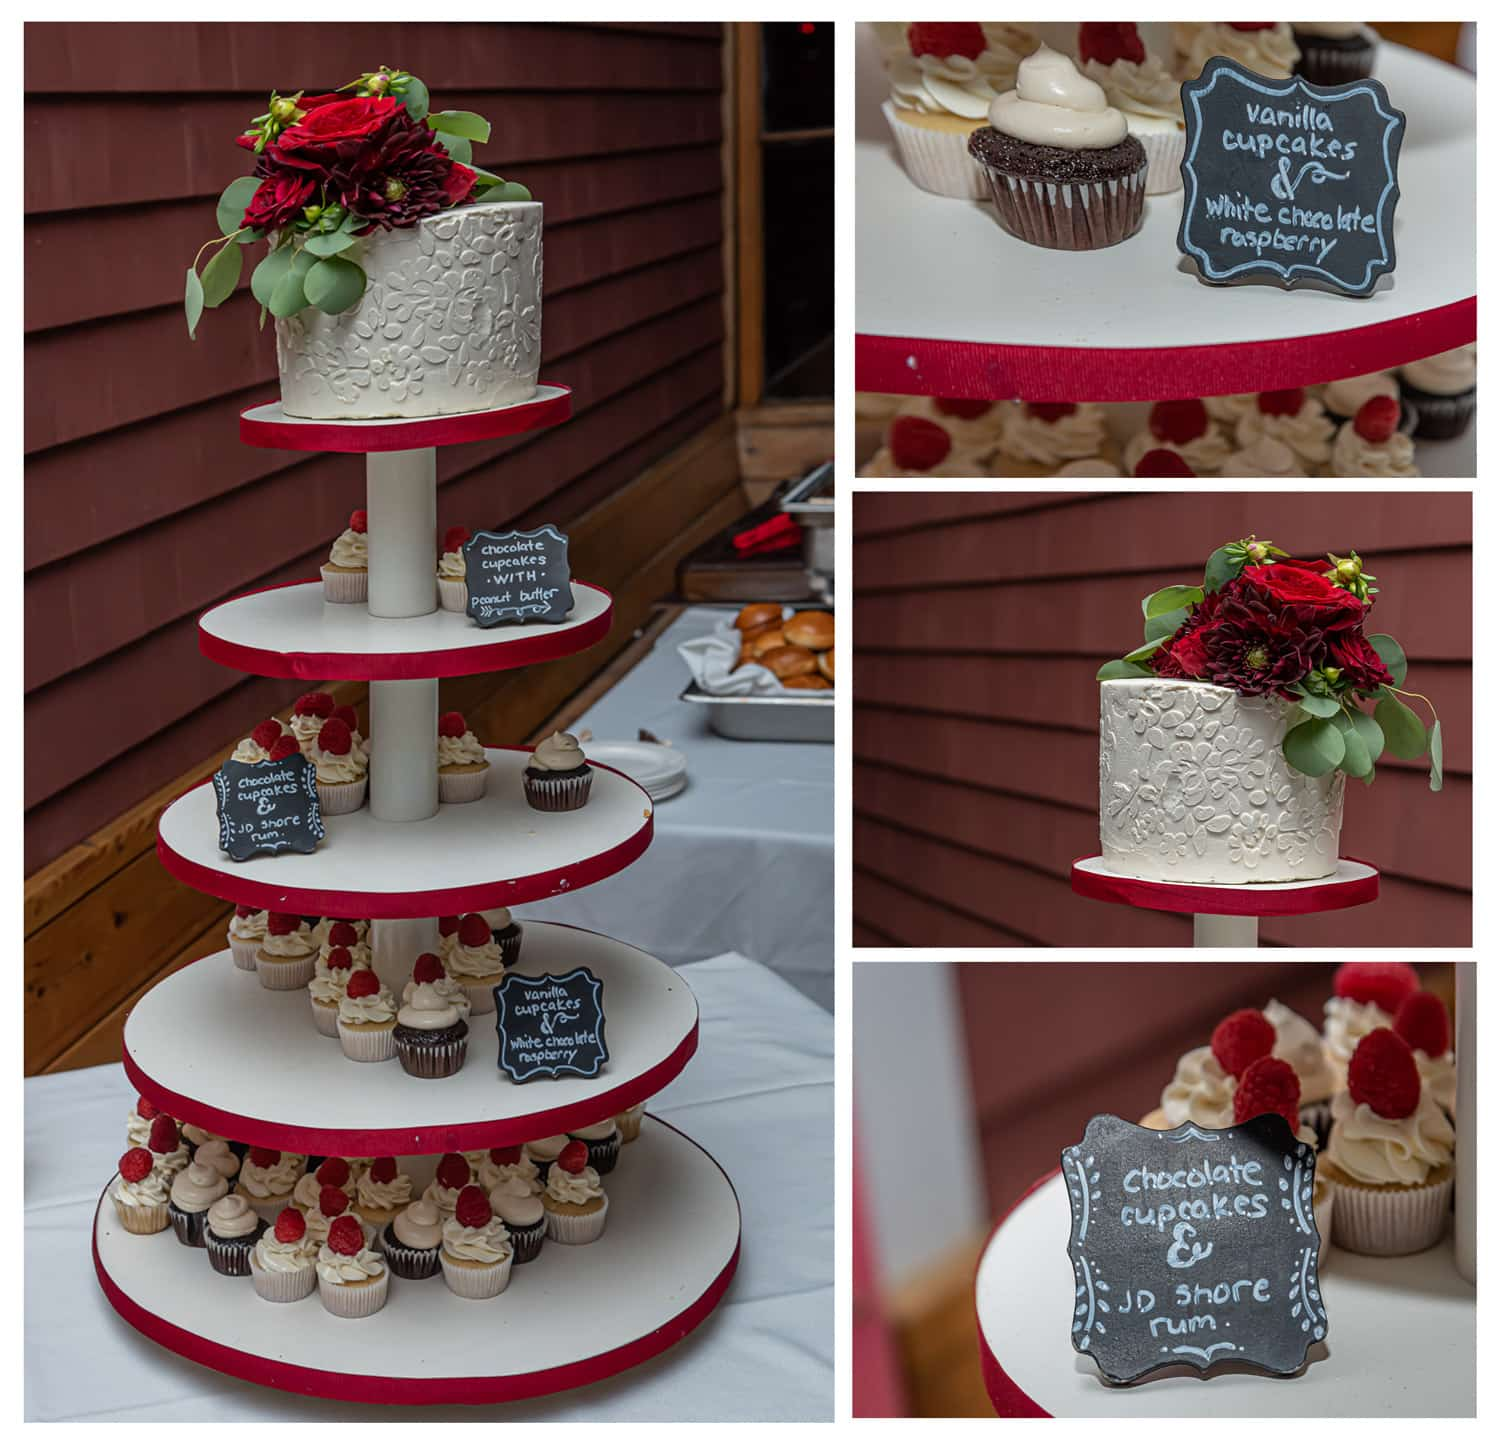 a beautiful wedding cake with wedding cupcakes on a 5 tier wooden cupcake stand with mini chalkboard signs